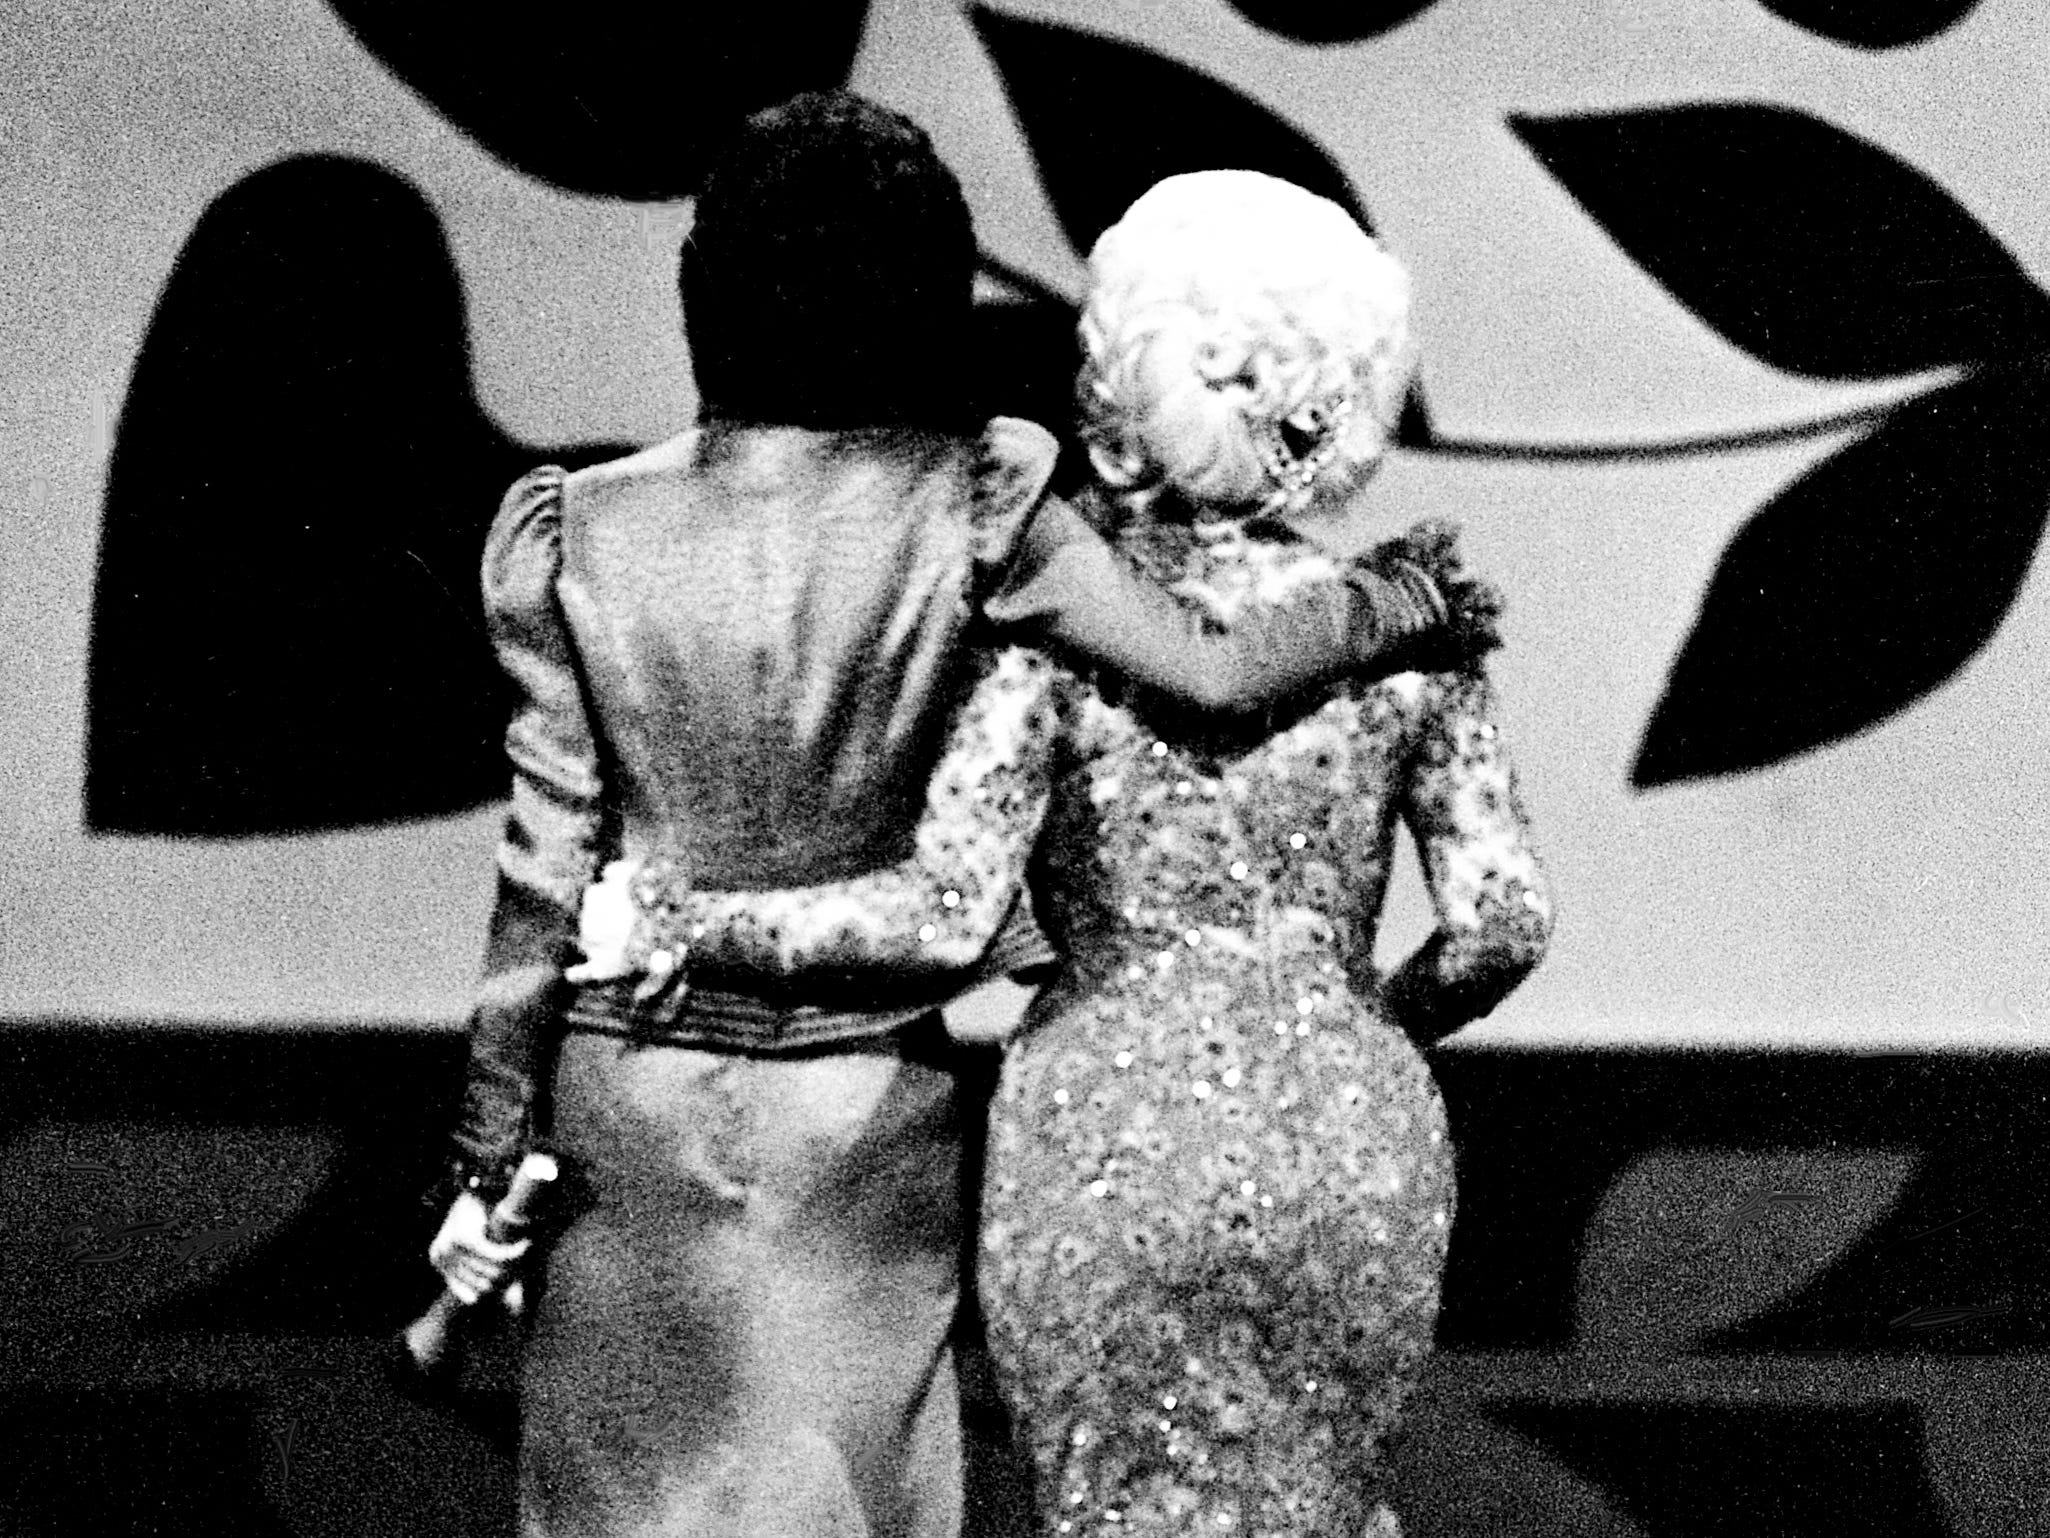 """With the audience on their feet and cheering, Carol Burnett and Dolly Parton walk off the stage after finishing their mock-melodramatic love song skit during the taping of the """"Dolly and Carol in Nashville"""" television special at the Grand Ole Opry House Jan. 10, 1979."""